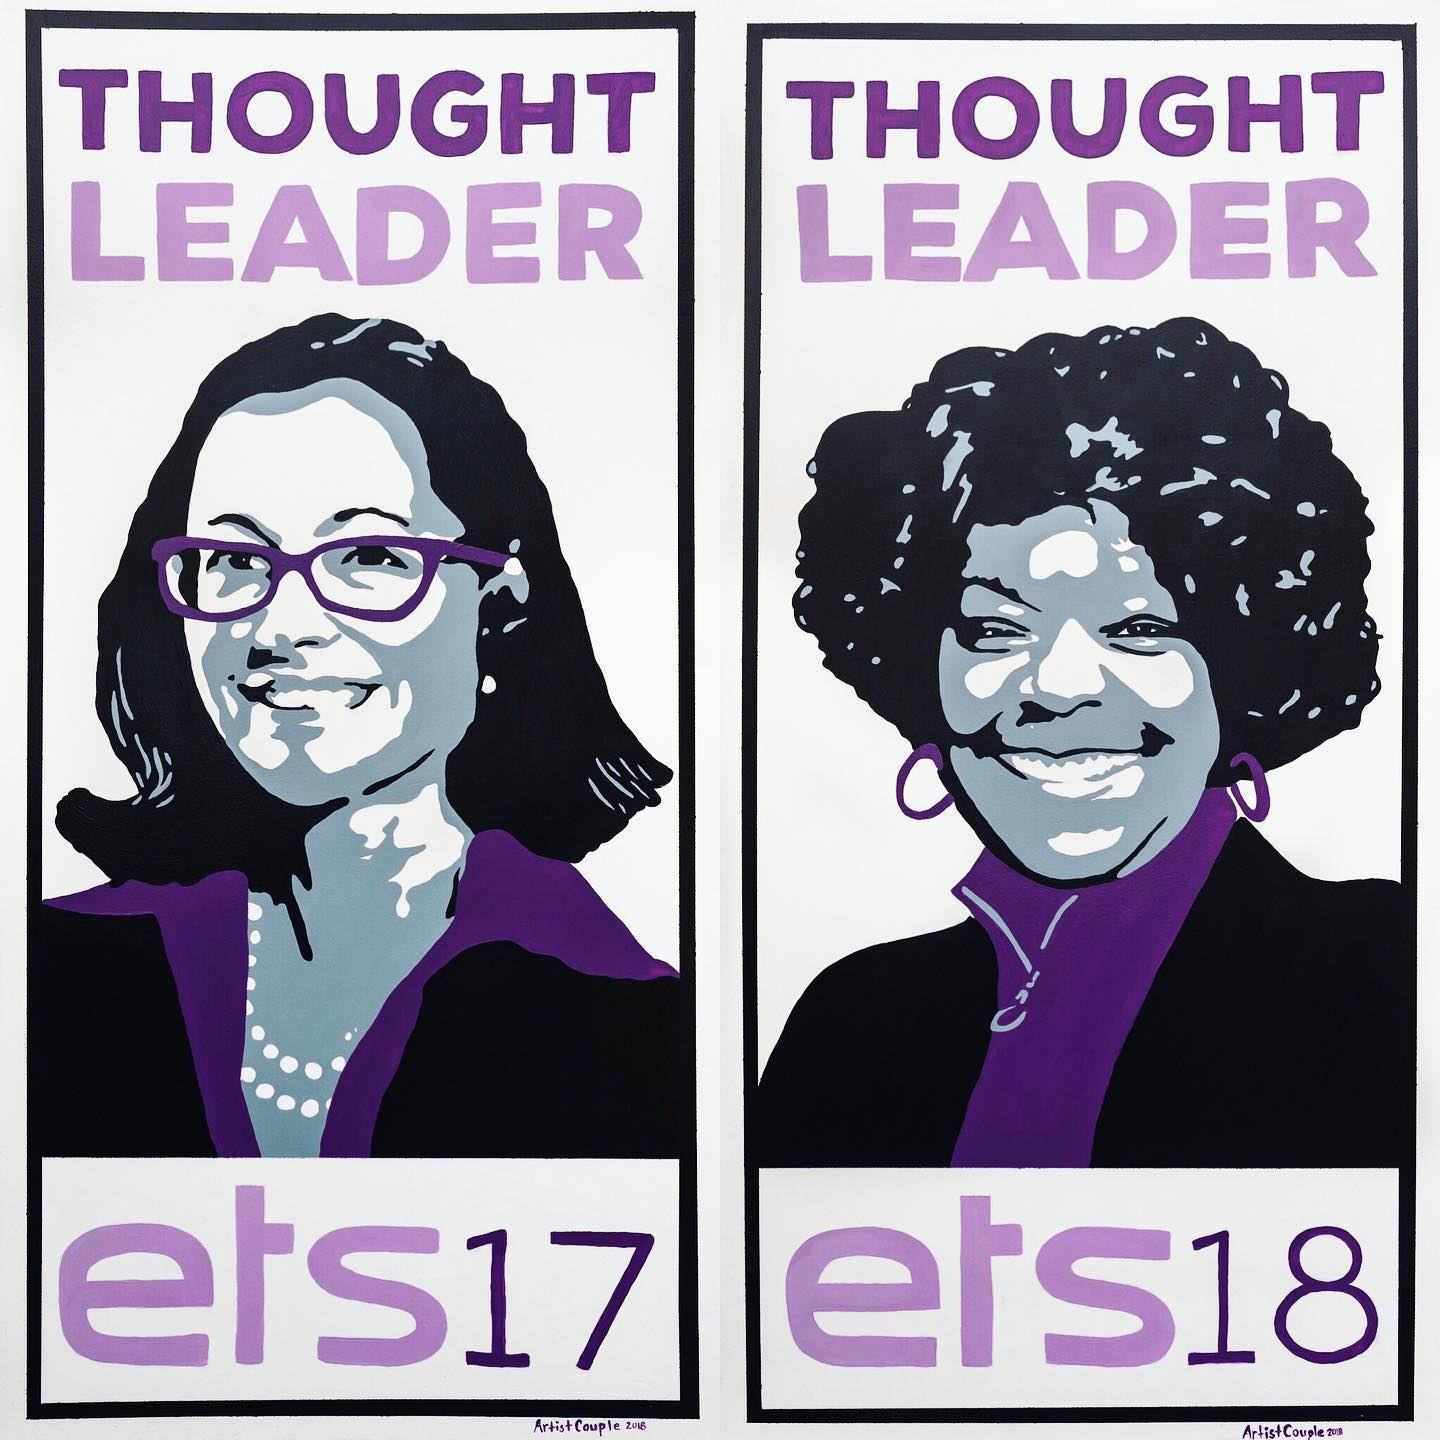 Event Art - Thought Leader Portraits for the Energy Thought Summit in Austin, TX